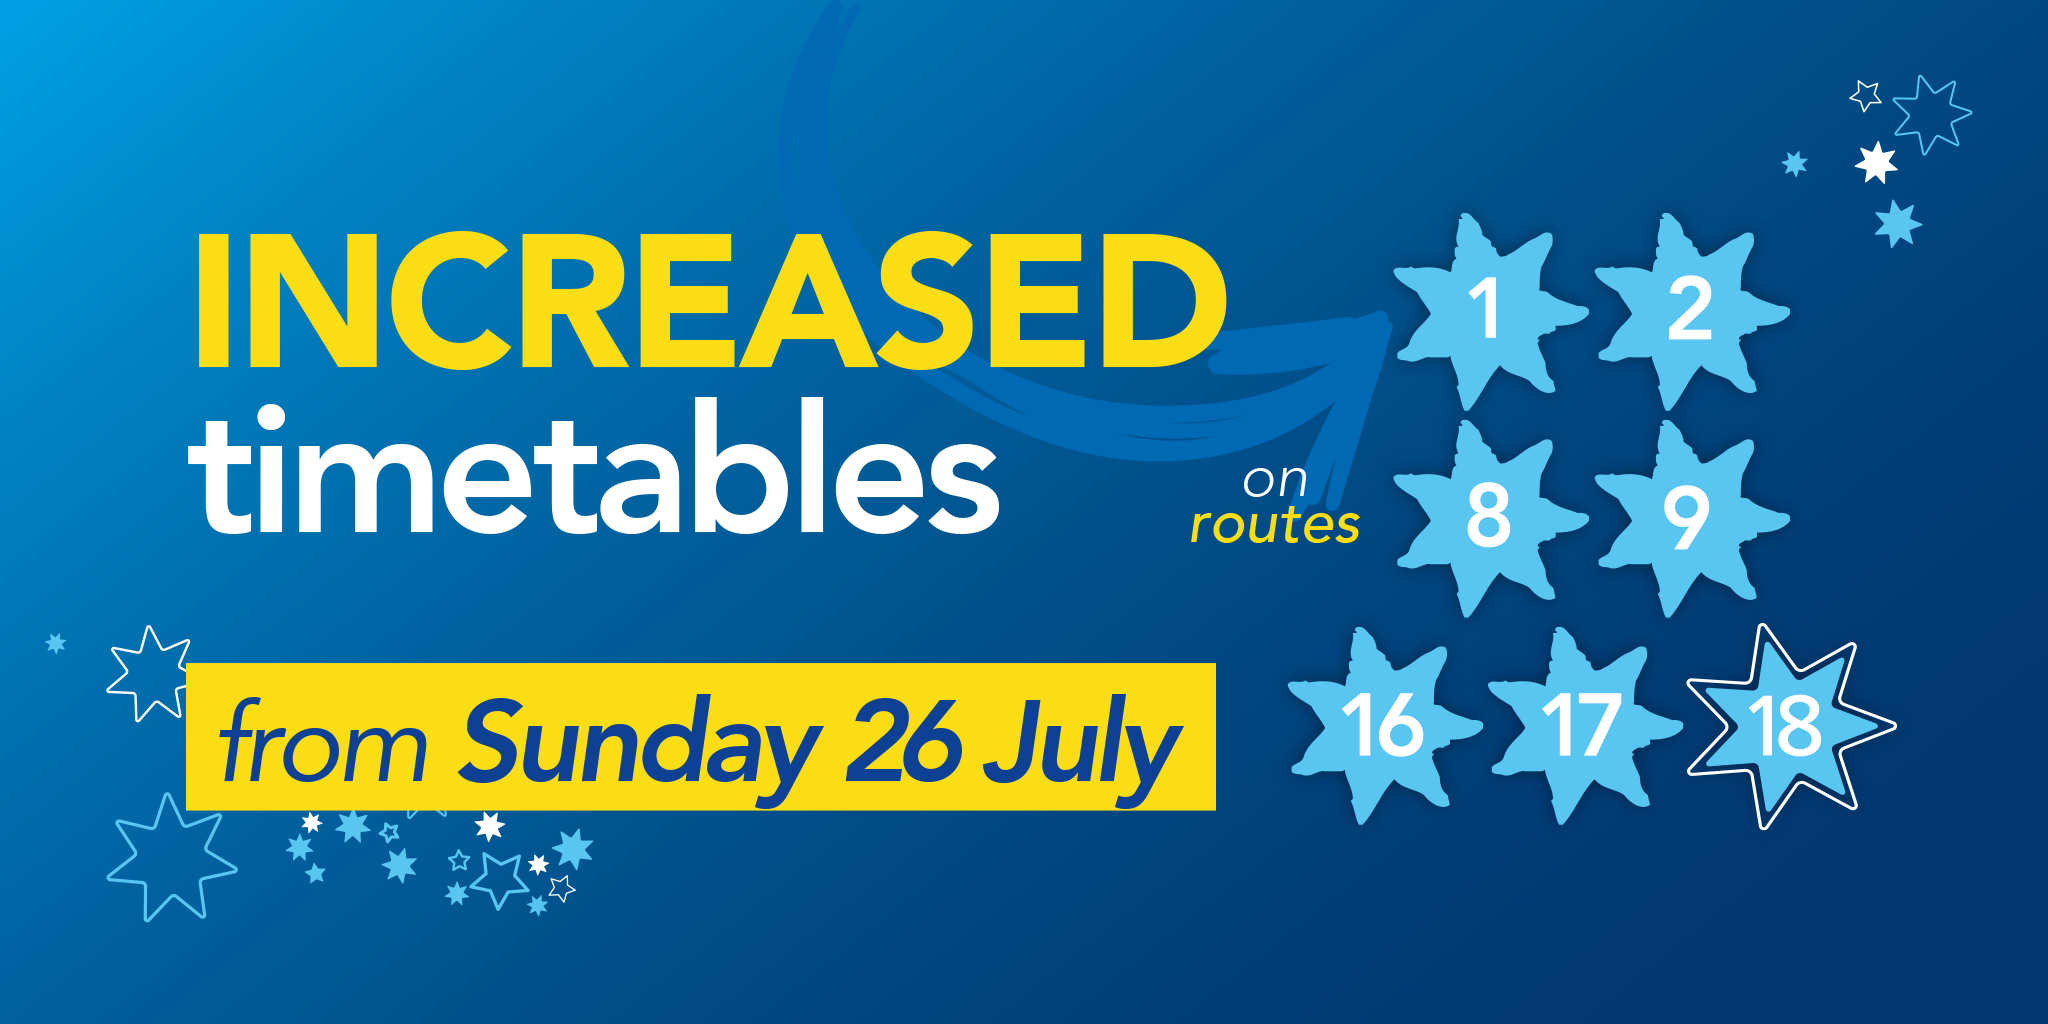 Image reading 'Increased timetables on routes 1, 2, 8, 9, 16, 17 and 18 from Sunday 26th July'